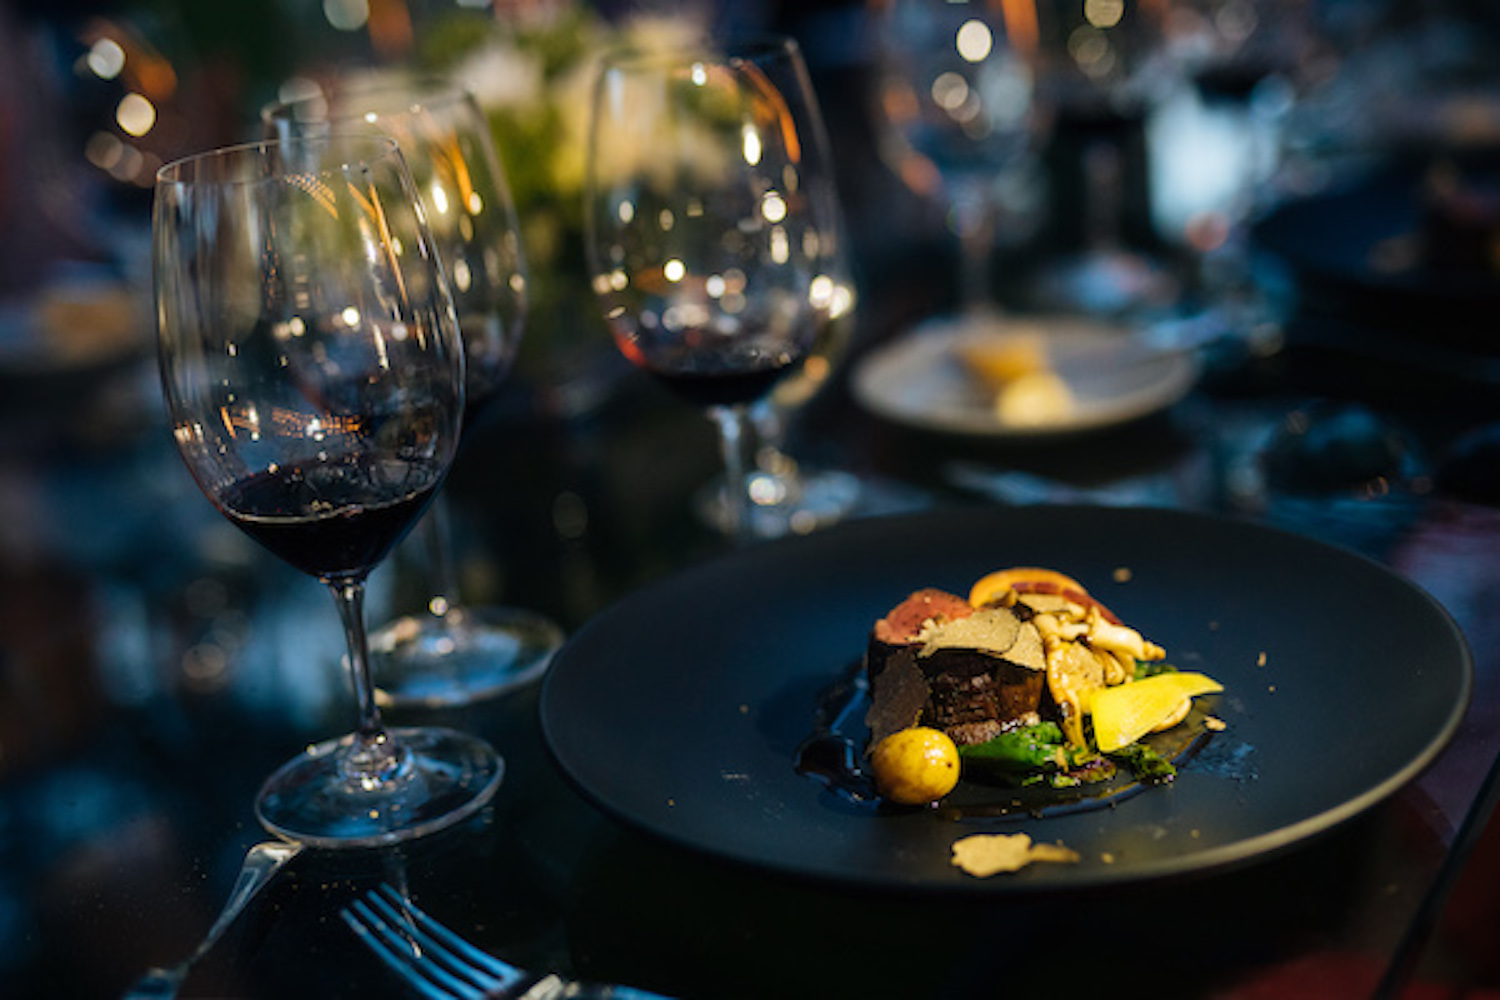 Napa Valley Sessions: Three Chefs Explore the Food & Wine of Napa Valley